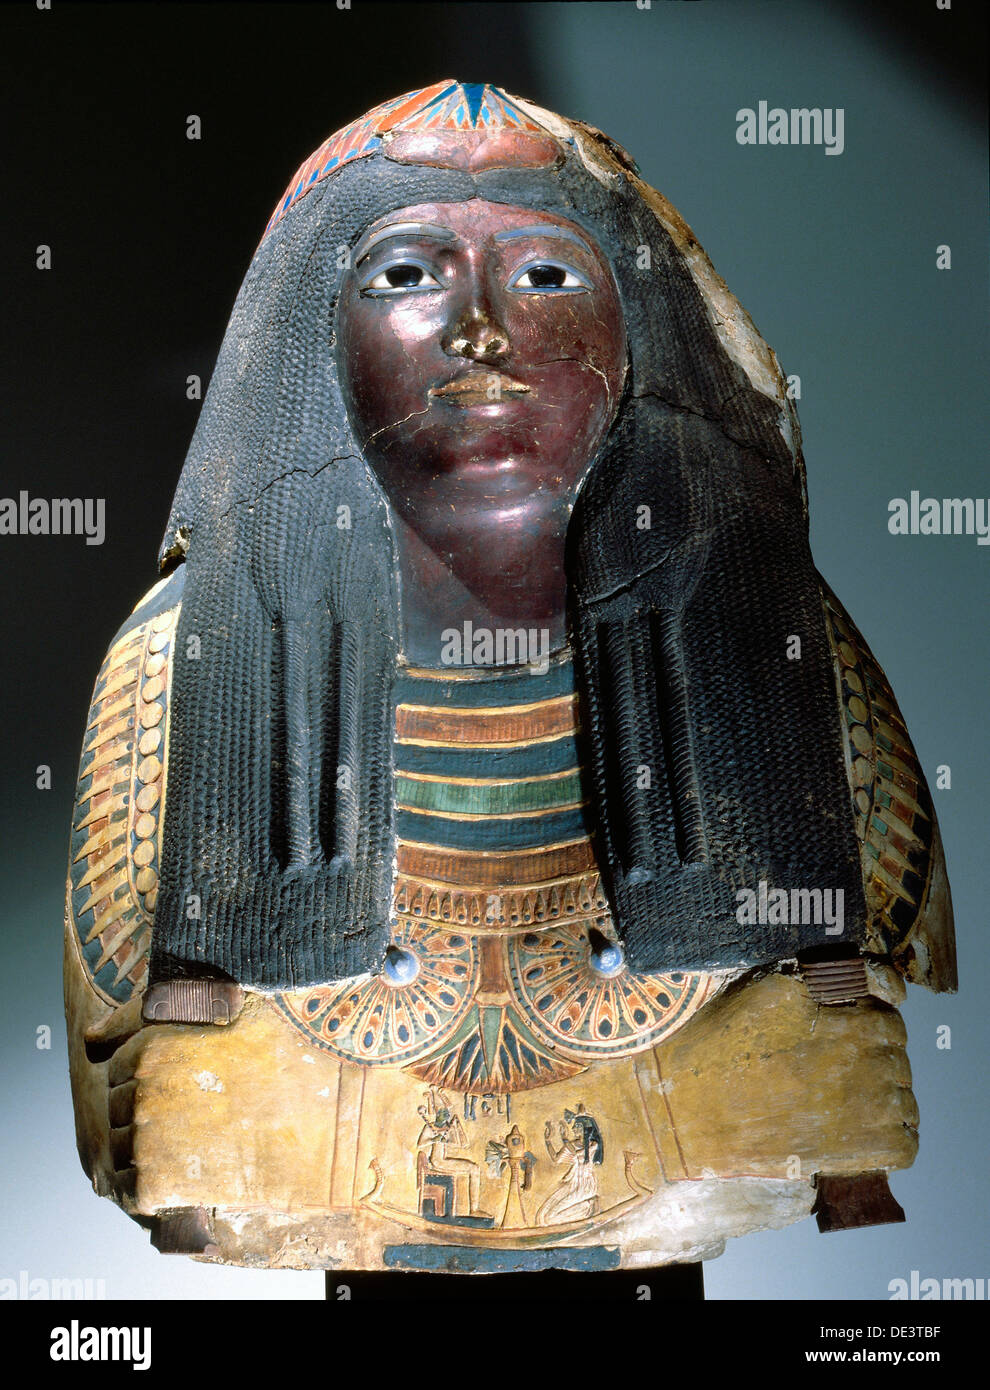 Upper part of an anthropomorphic coffin with blackened face, lotus ornamented wig, chest ornaments and a picture of the deceased - Stock Image